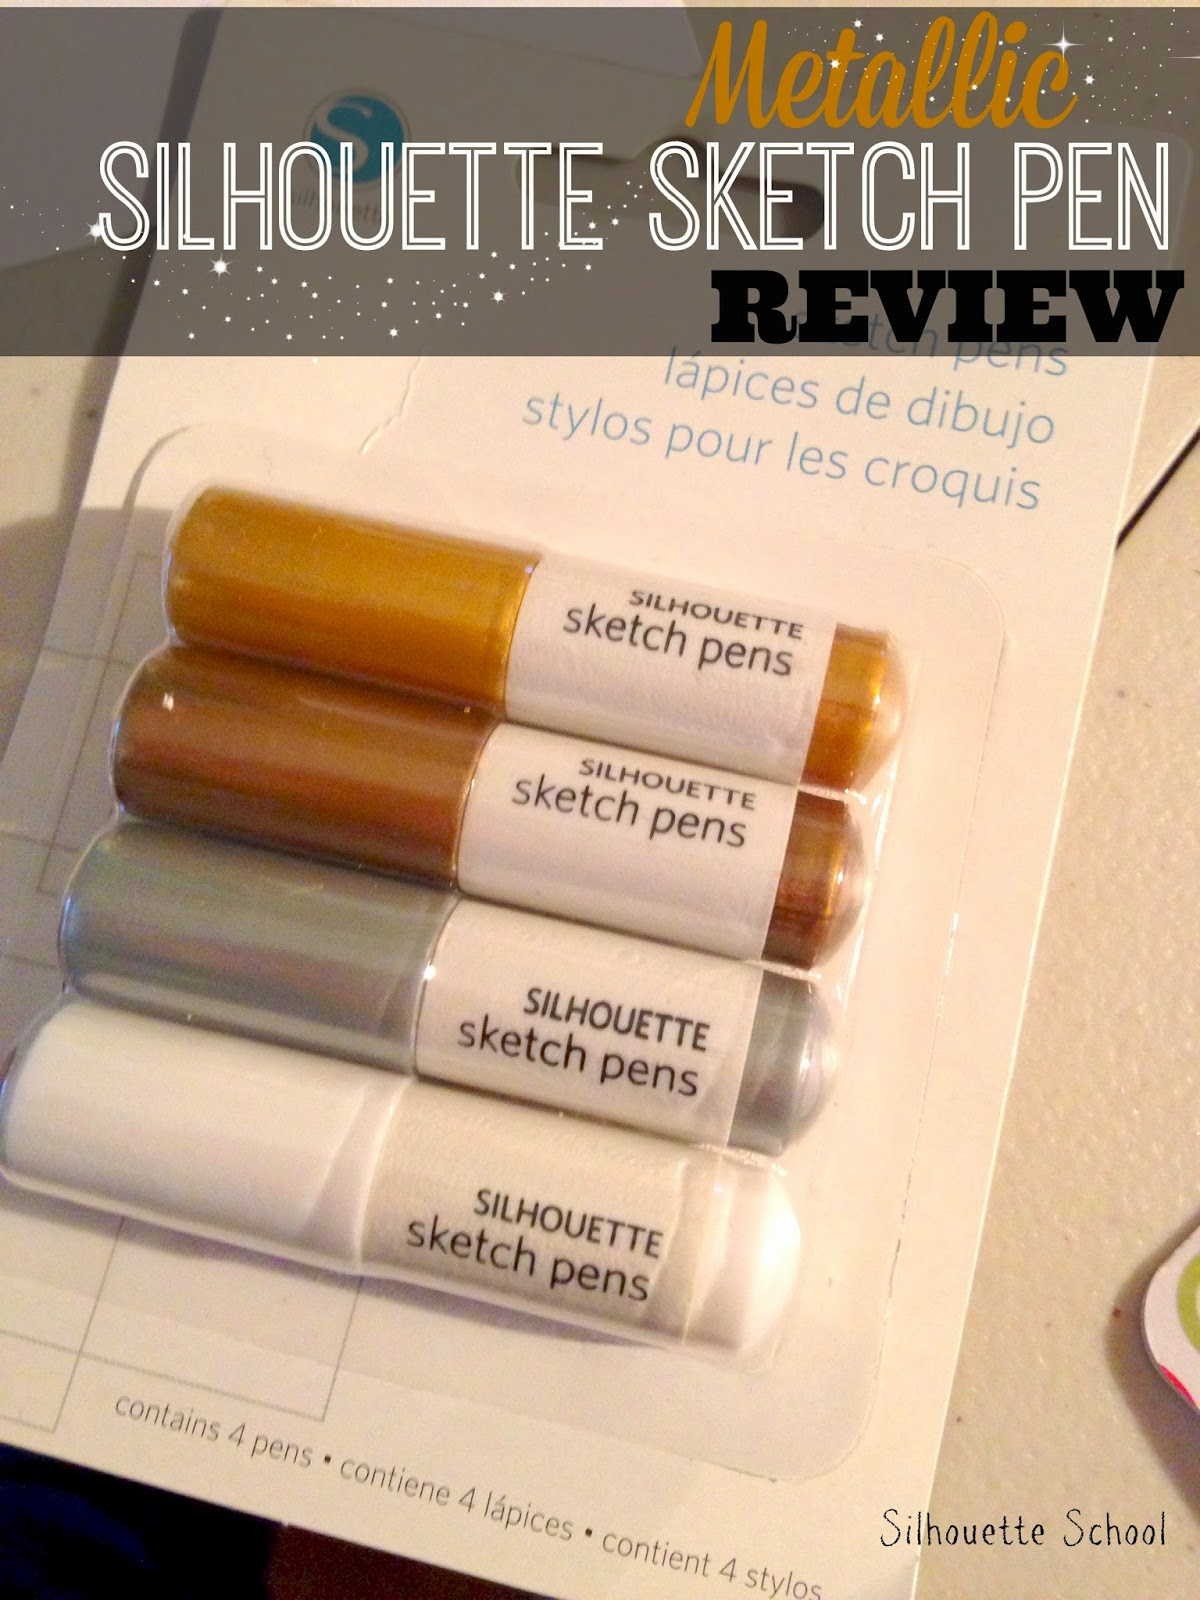 Silhouette sketch pen, white, metallic, review